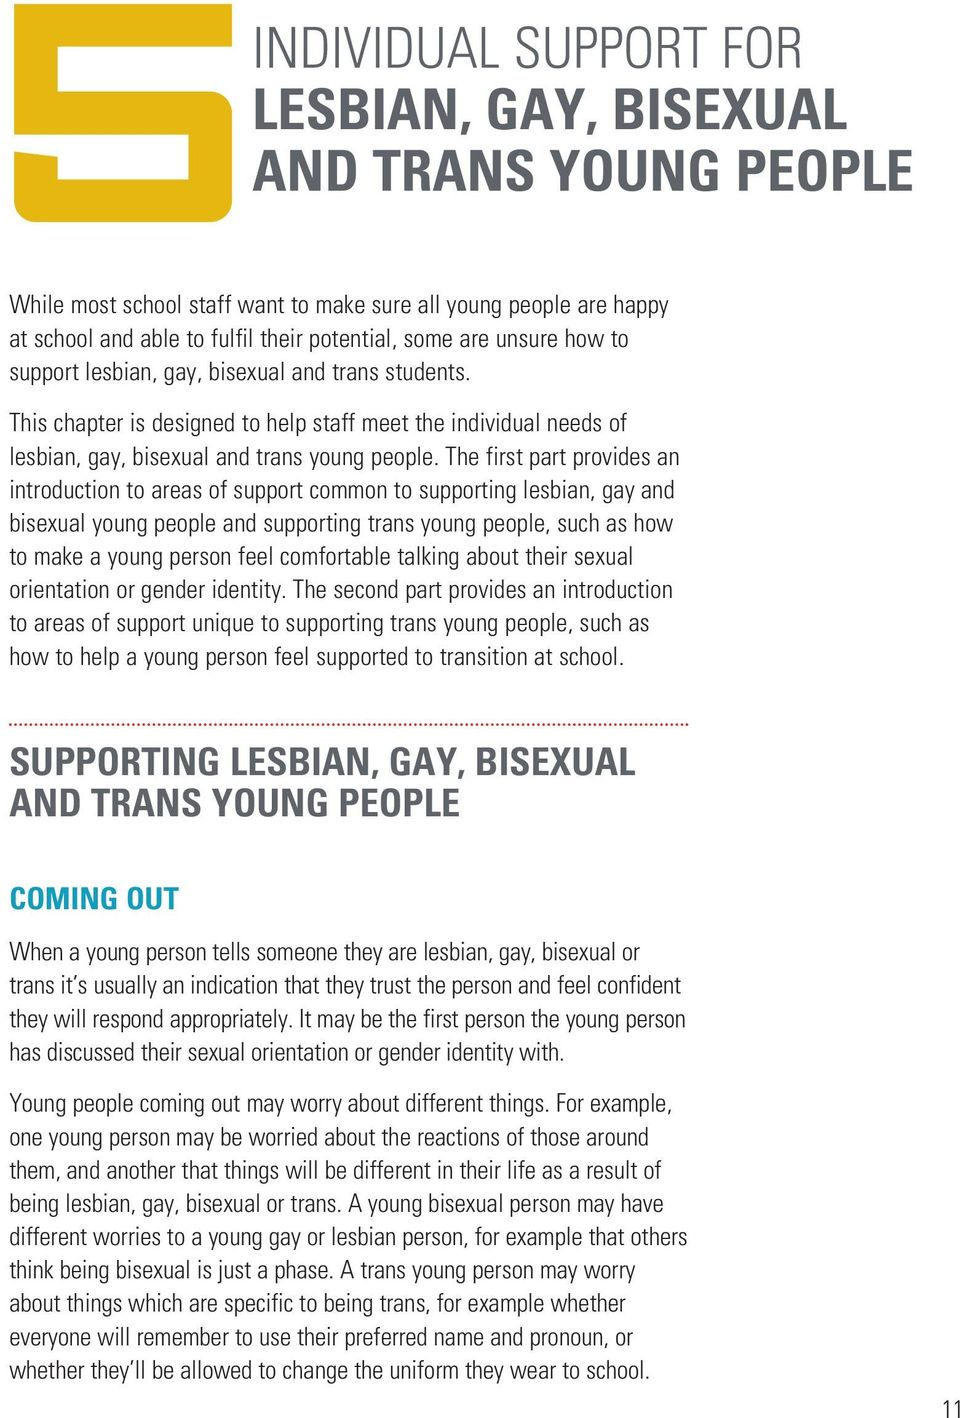 The first part provides an introduction to areas of support common to supporting lesbian, gay and bisexual young people and supporting trans young people, such as how to make a young person feel